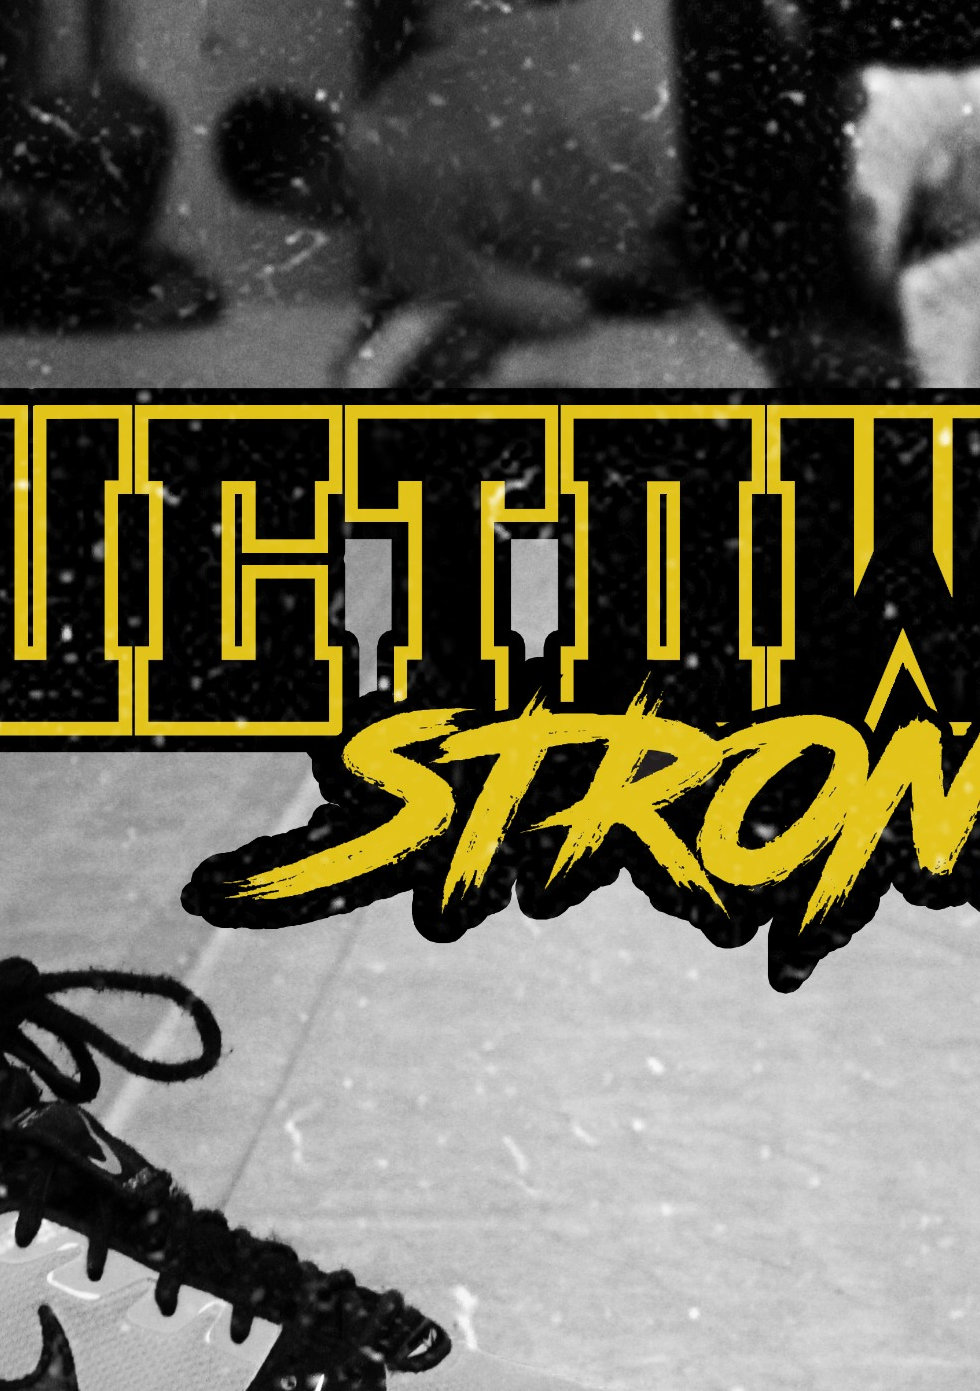 buctownstrong_edited.jpg